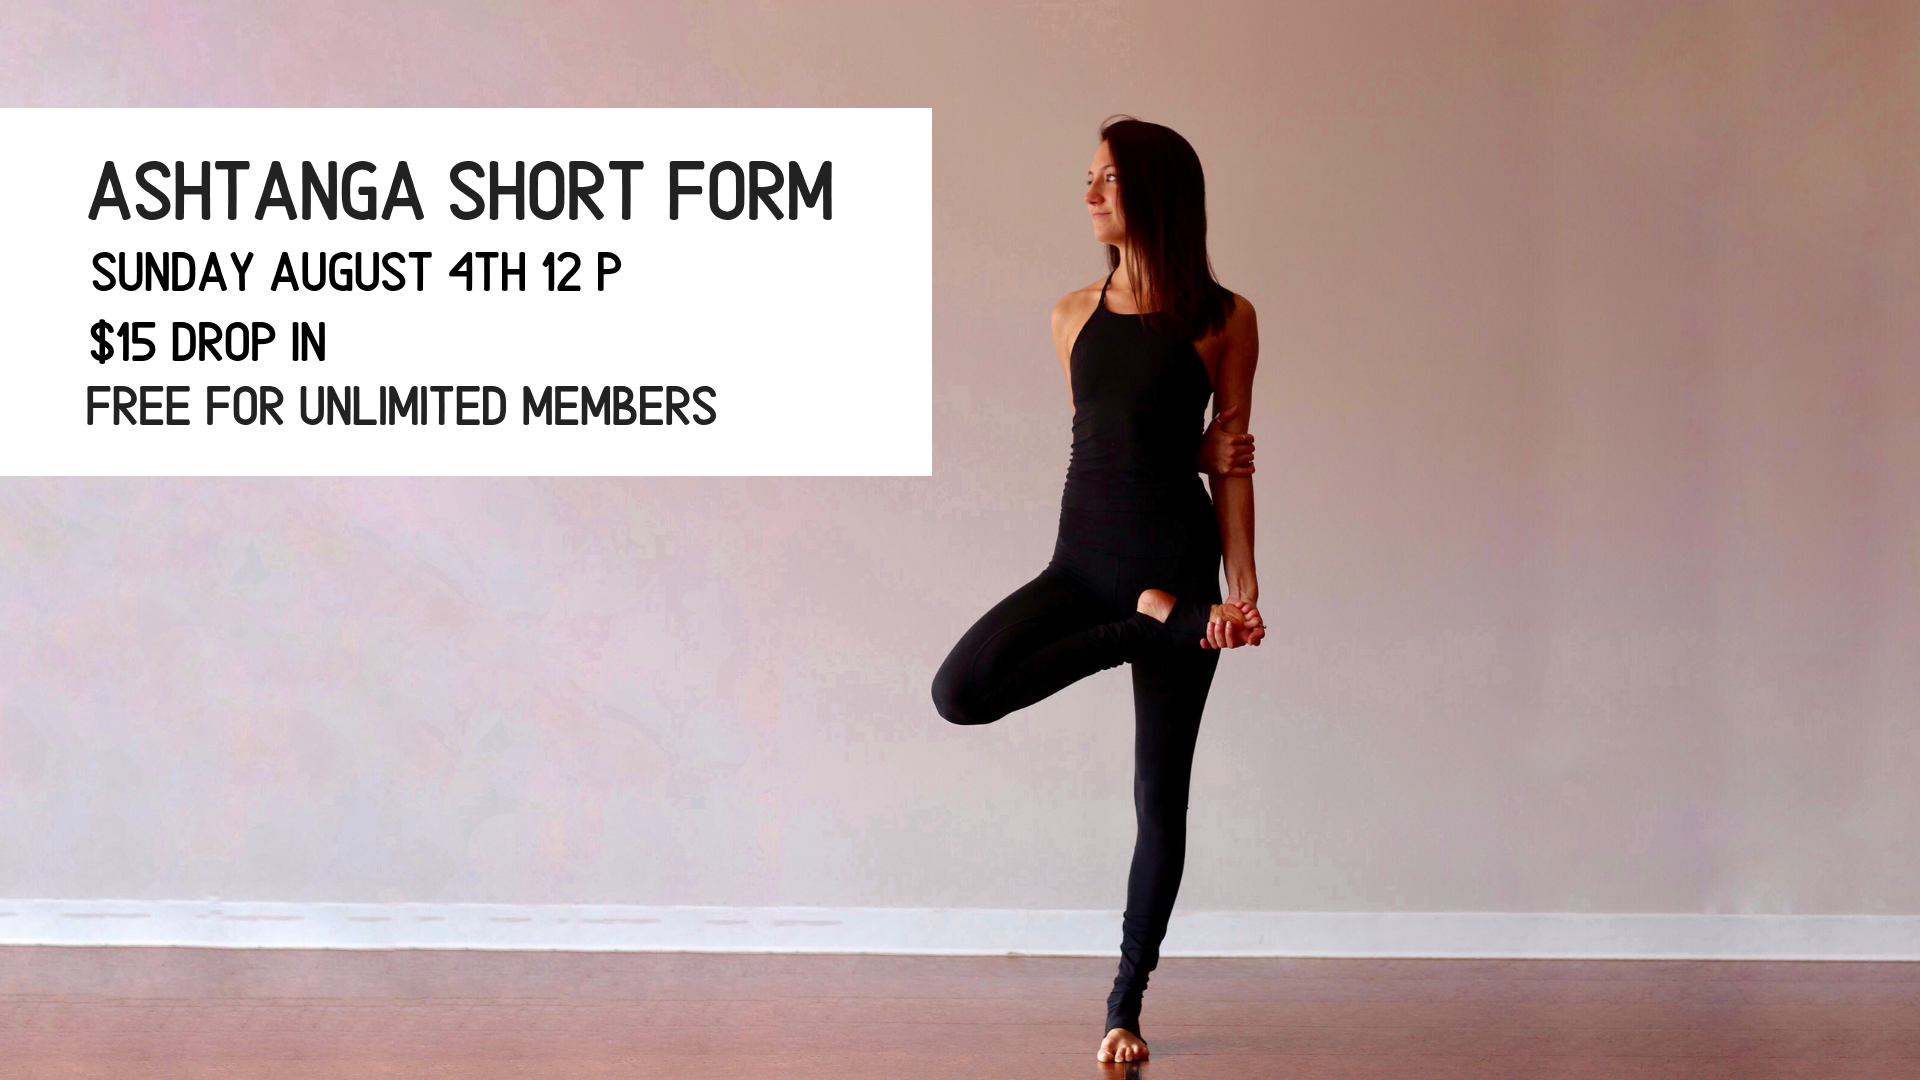 Ashtanga Short Form